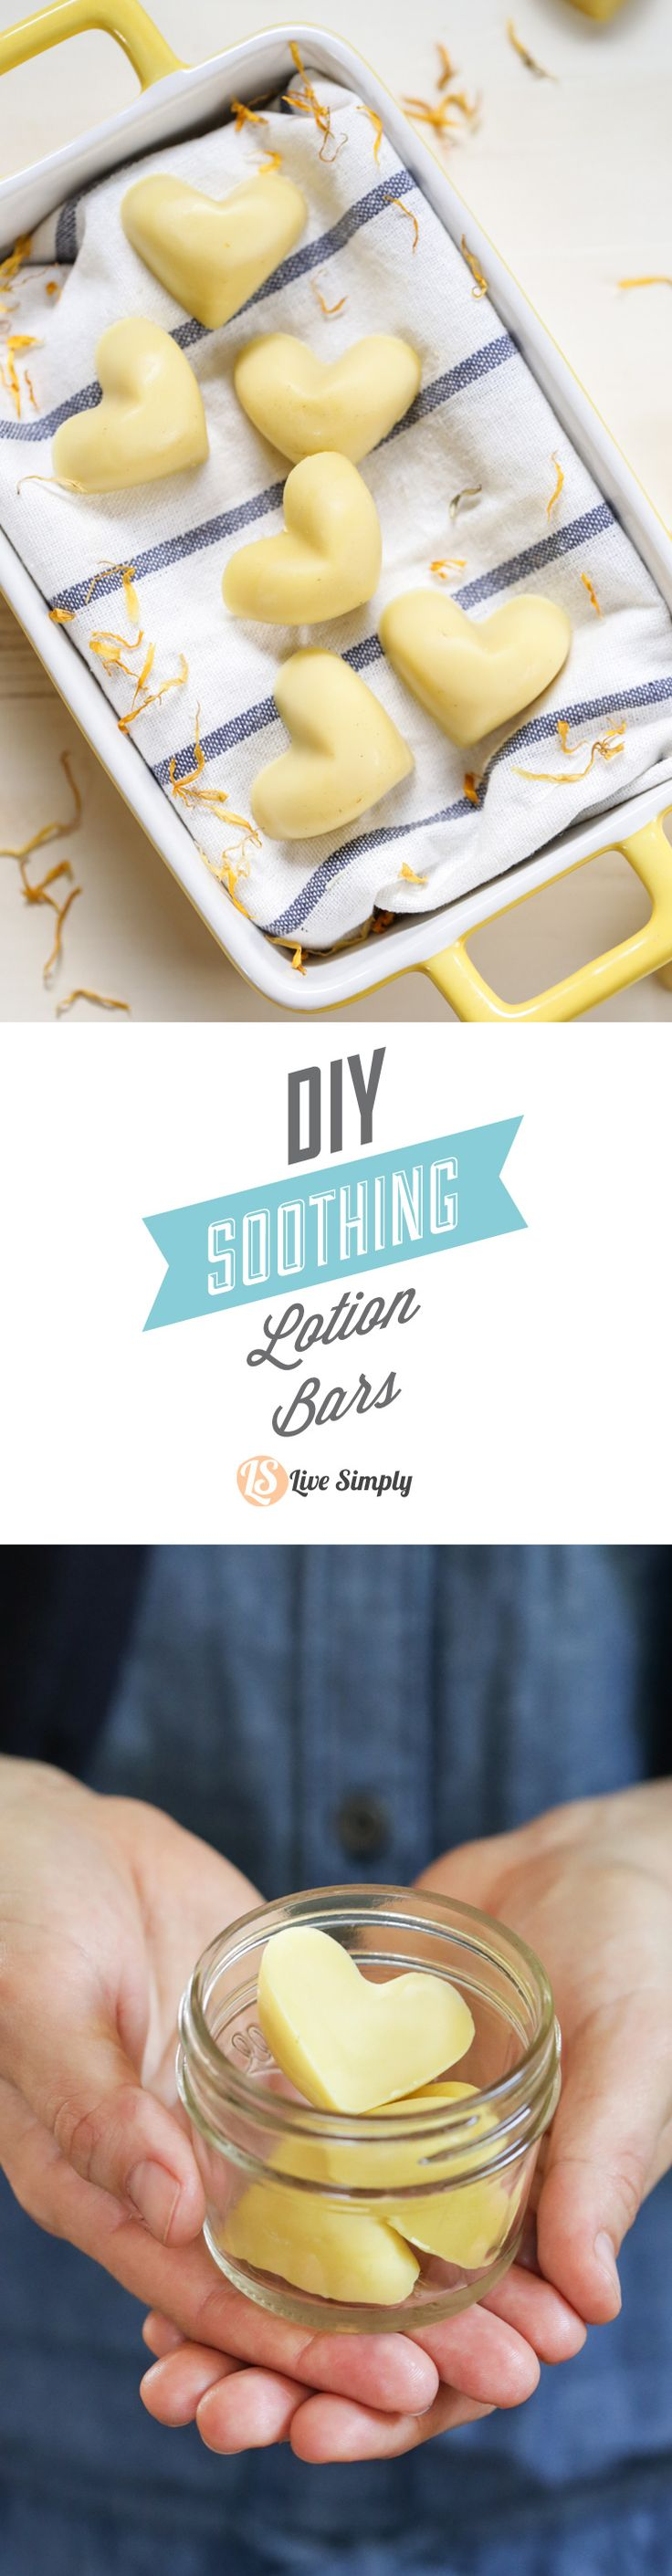 DIY Soothing Lotion Bars! These simple, little bars are the perfect lotion bars for soothing stressed, tired, burned, or even acne-scared skin. These lotion bars also make the perfect little gift--just add a few to a mason jar. Full recipe and tutorial, plus a video instruction: http://livesimply.me/2015/03/28/diy-soothing-lotion-bars/